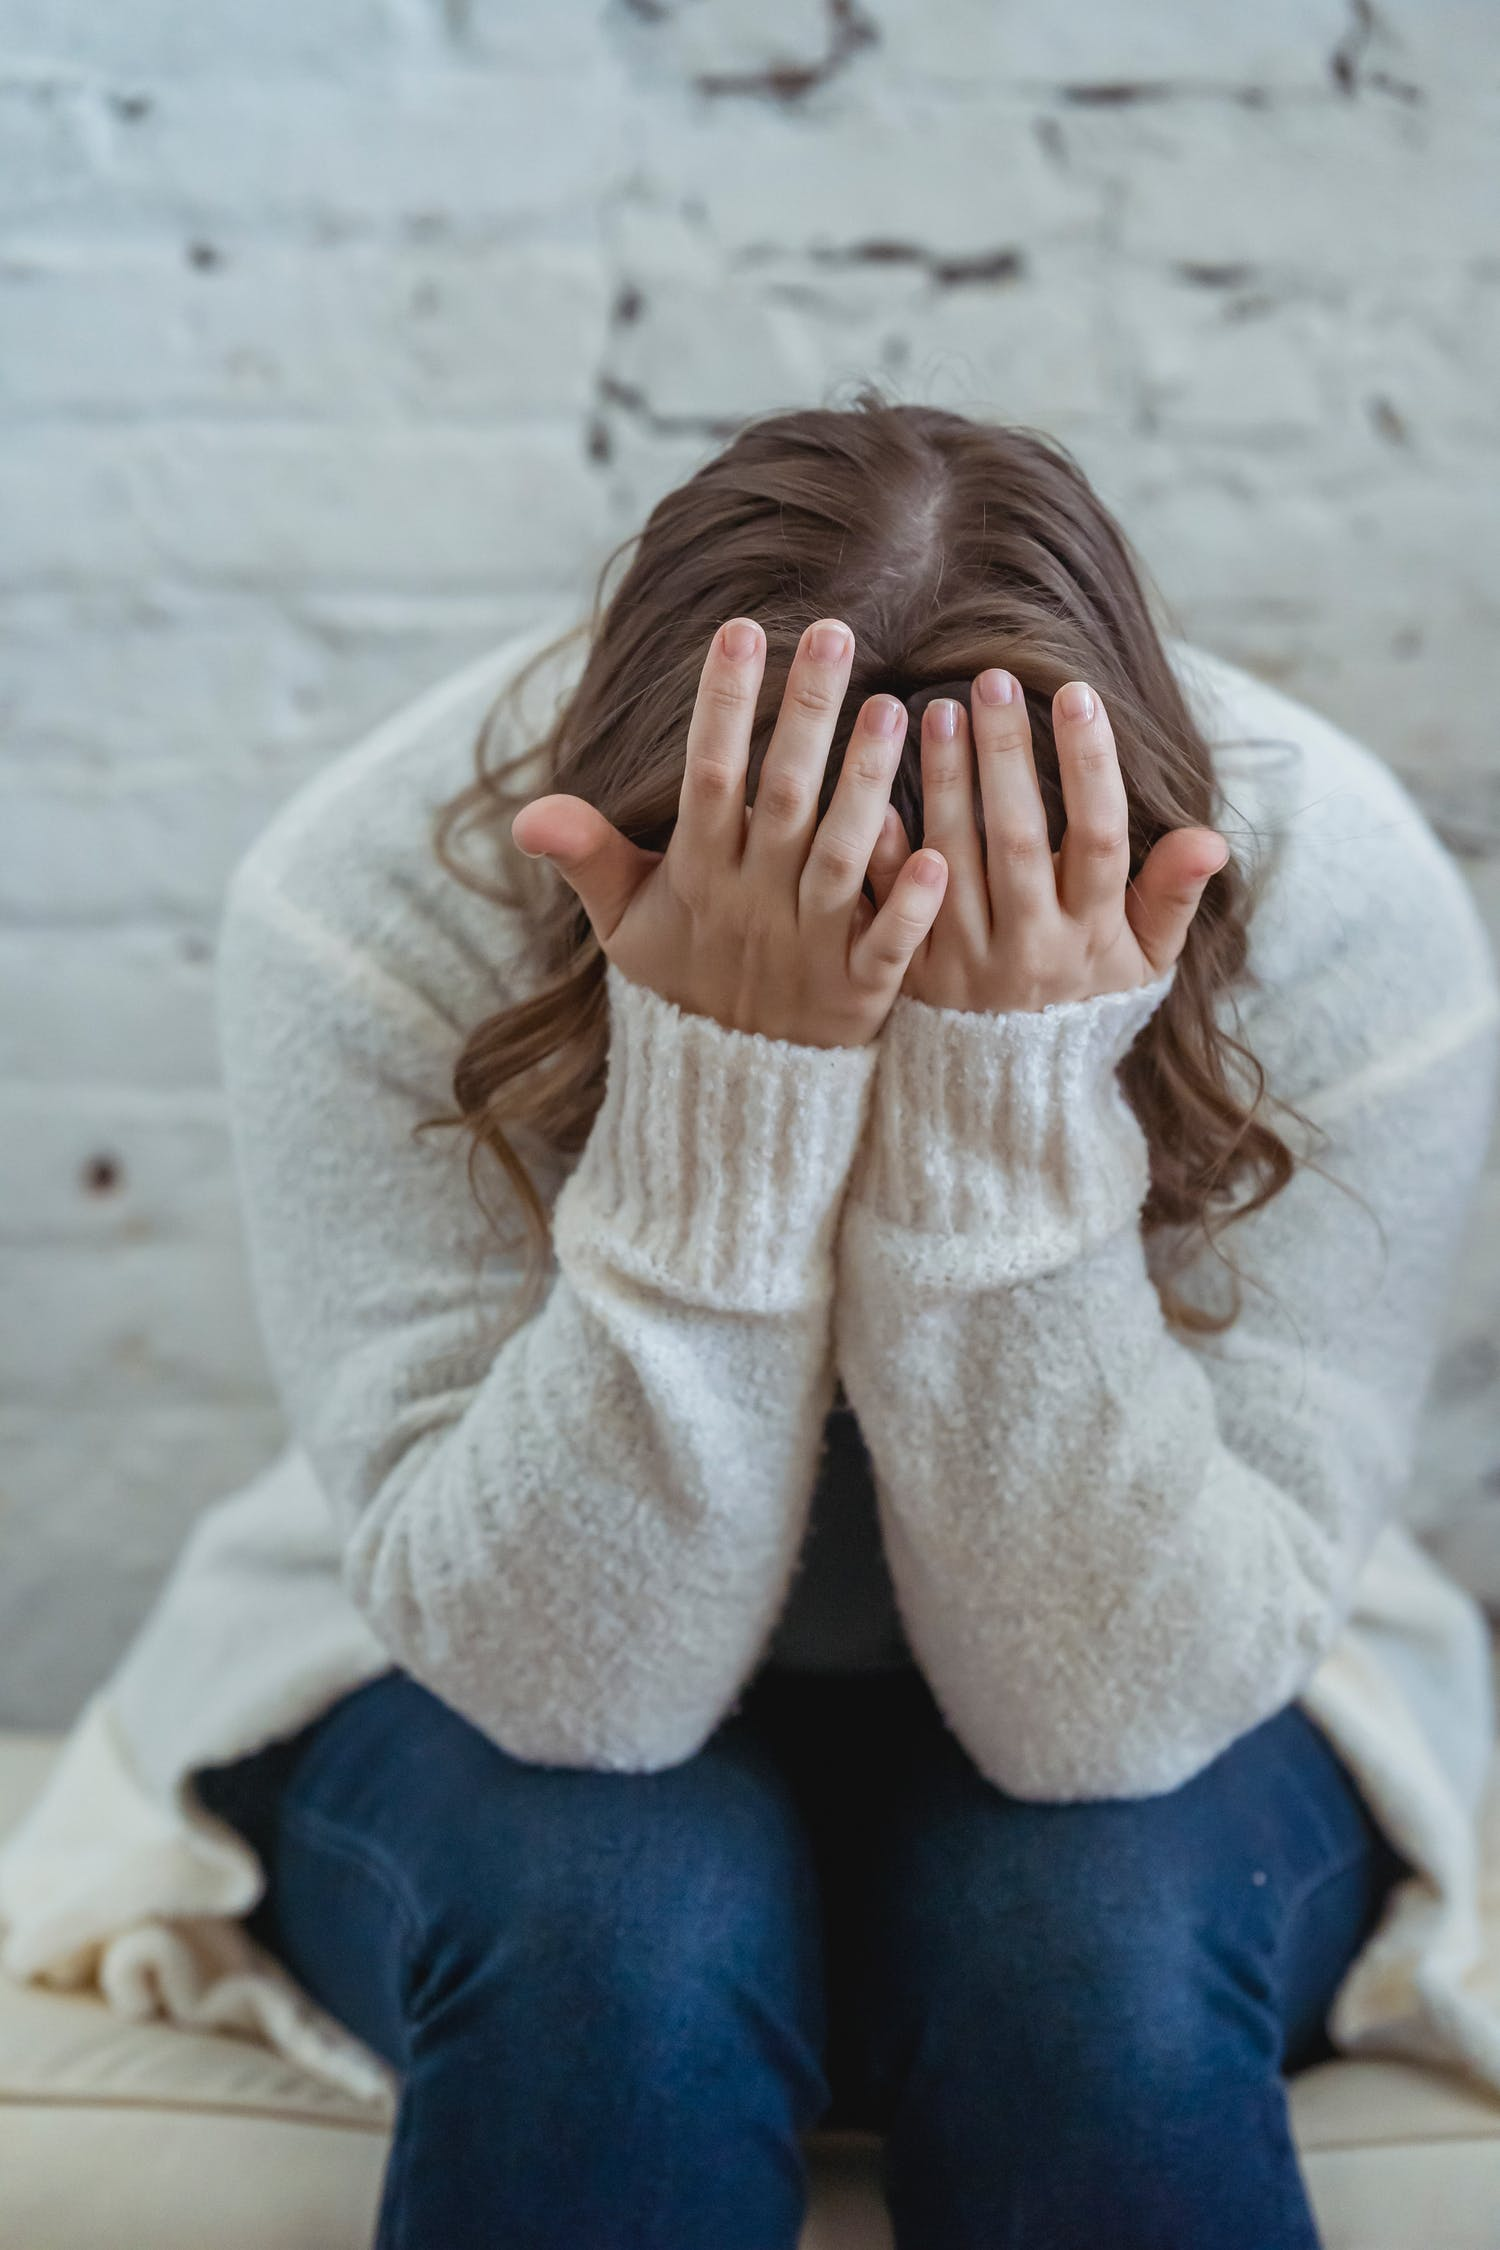 Unrecognizable tired female in casual clothes covering face with hands while sitting on soft surface near brick wall in light apartment